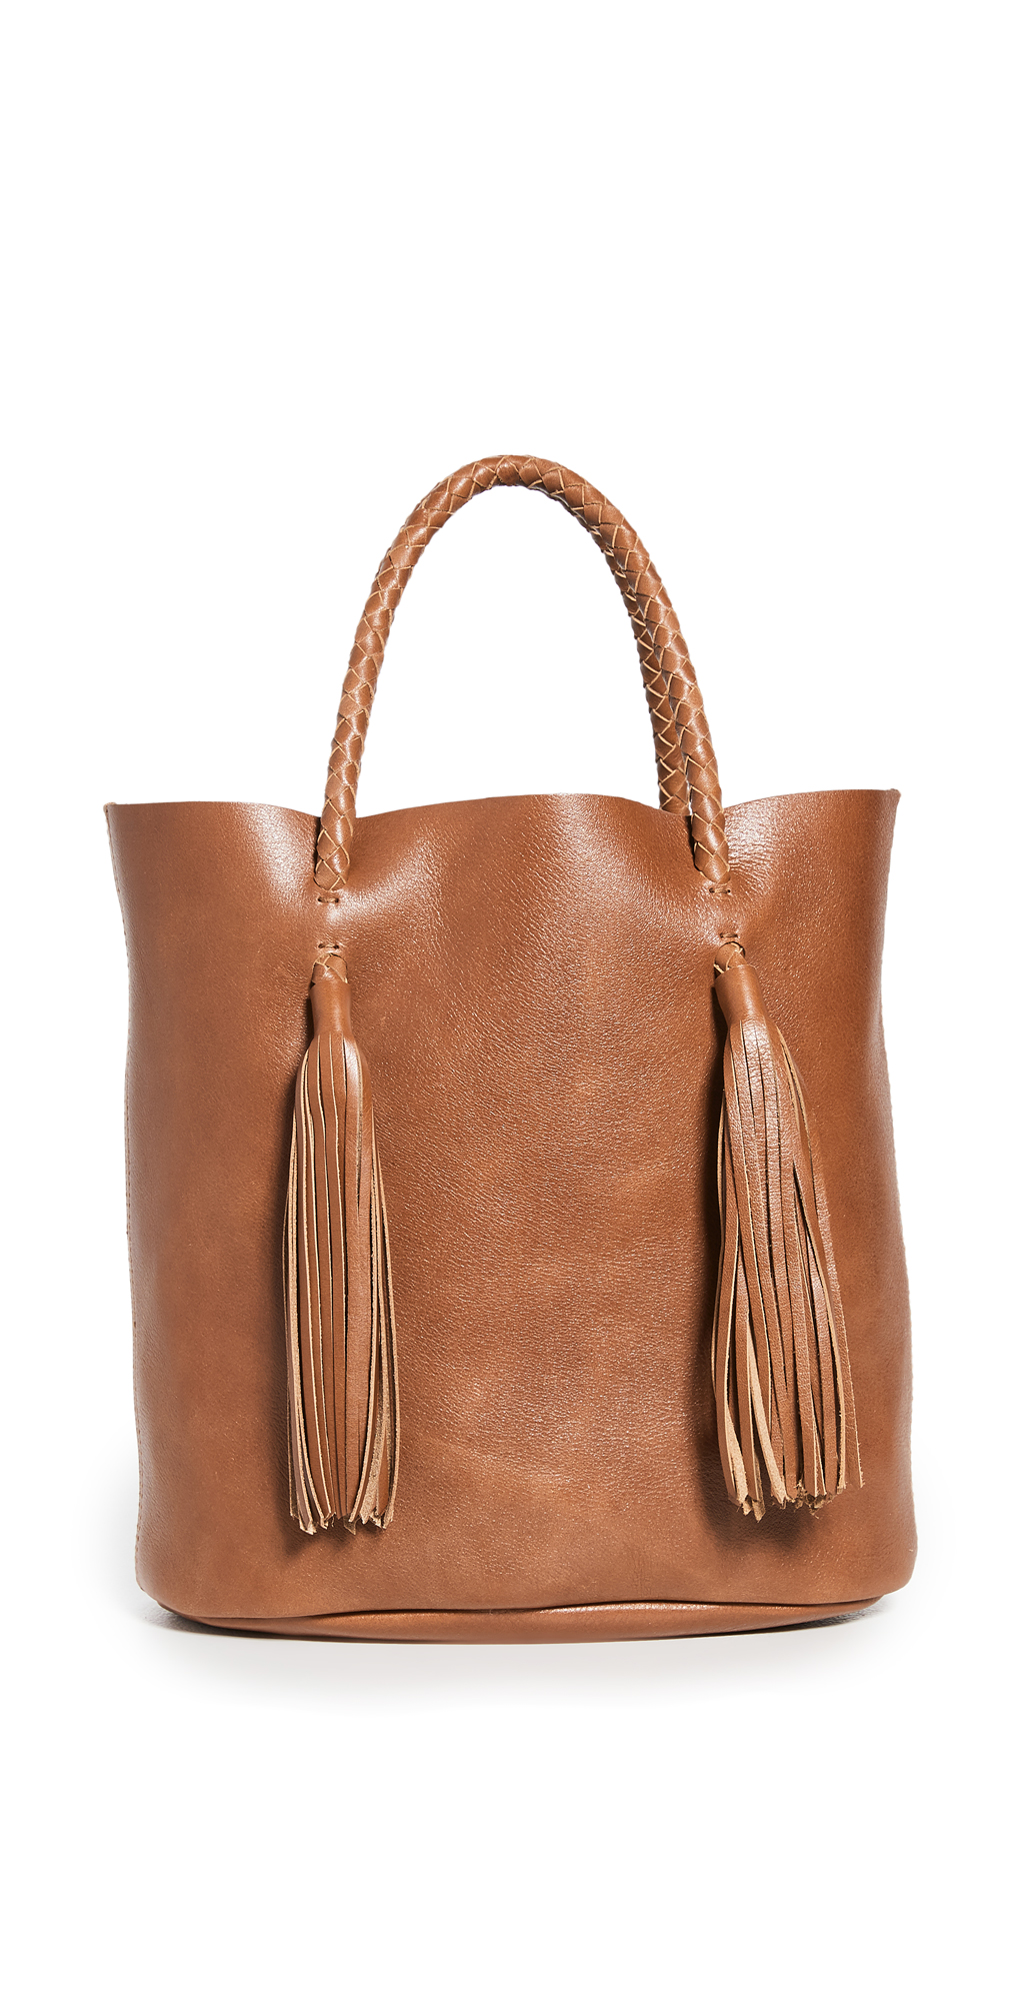 Madewell The Tasseled Bucket Bag